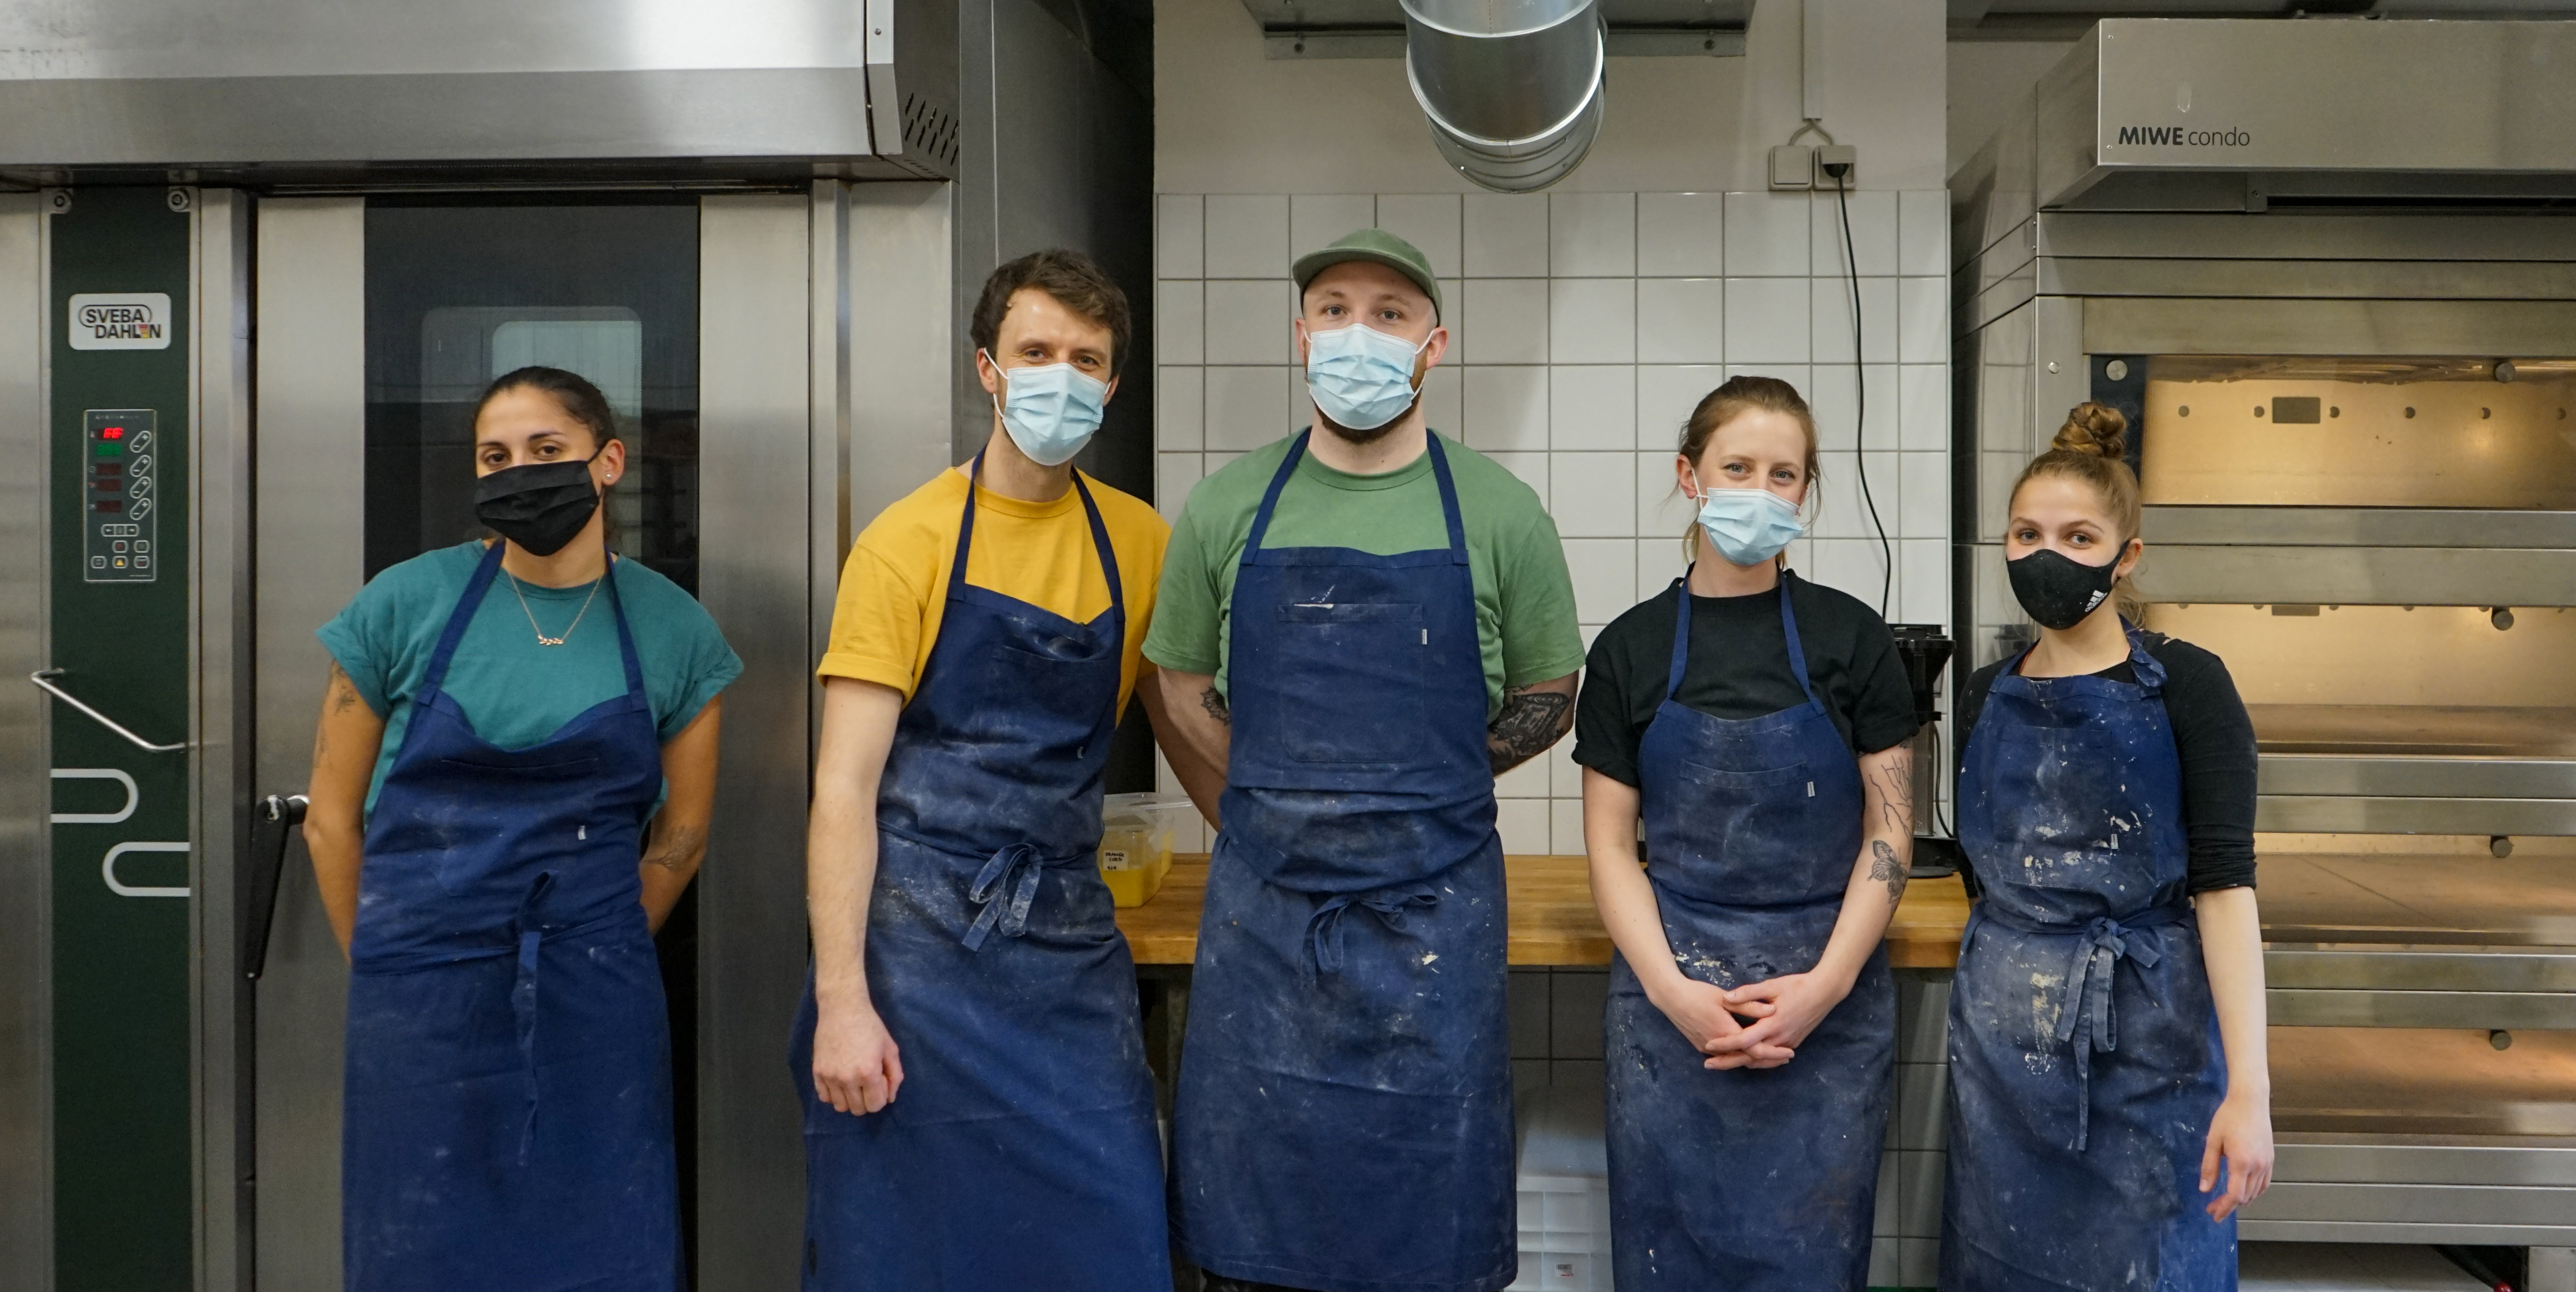 The bakery team (from left): Nicole, Andrew, Michael, Meagan and Fabiana